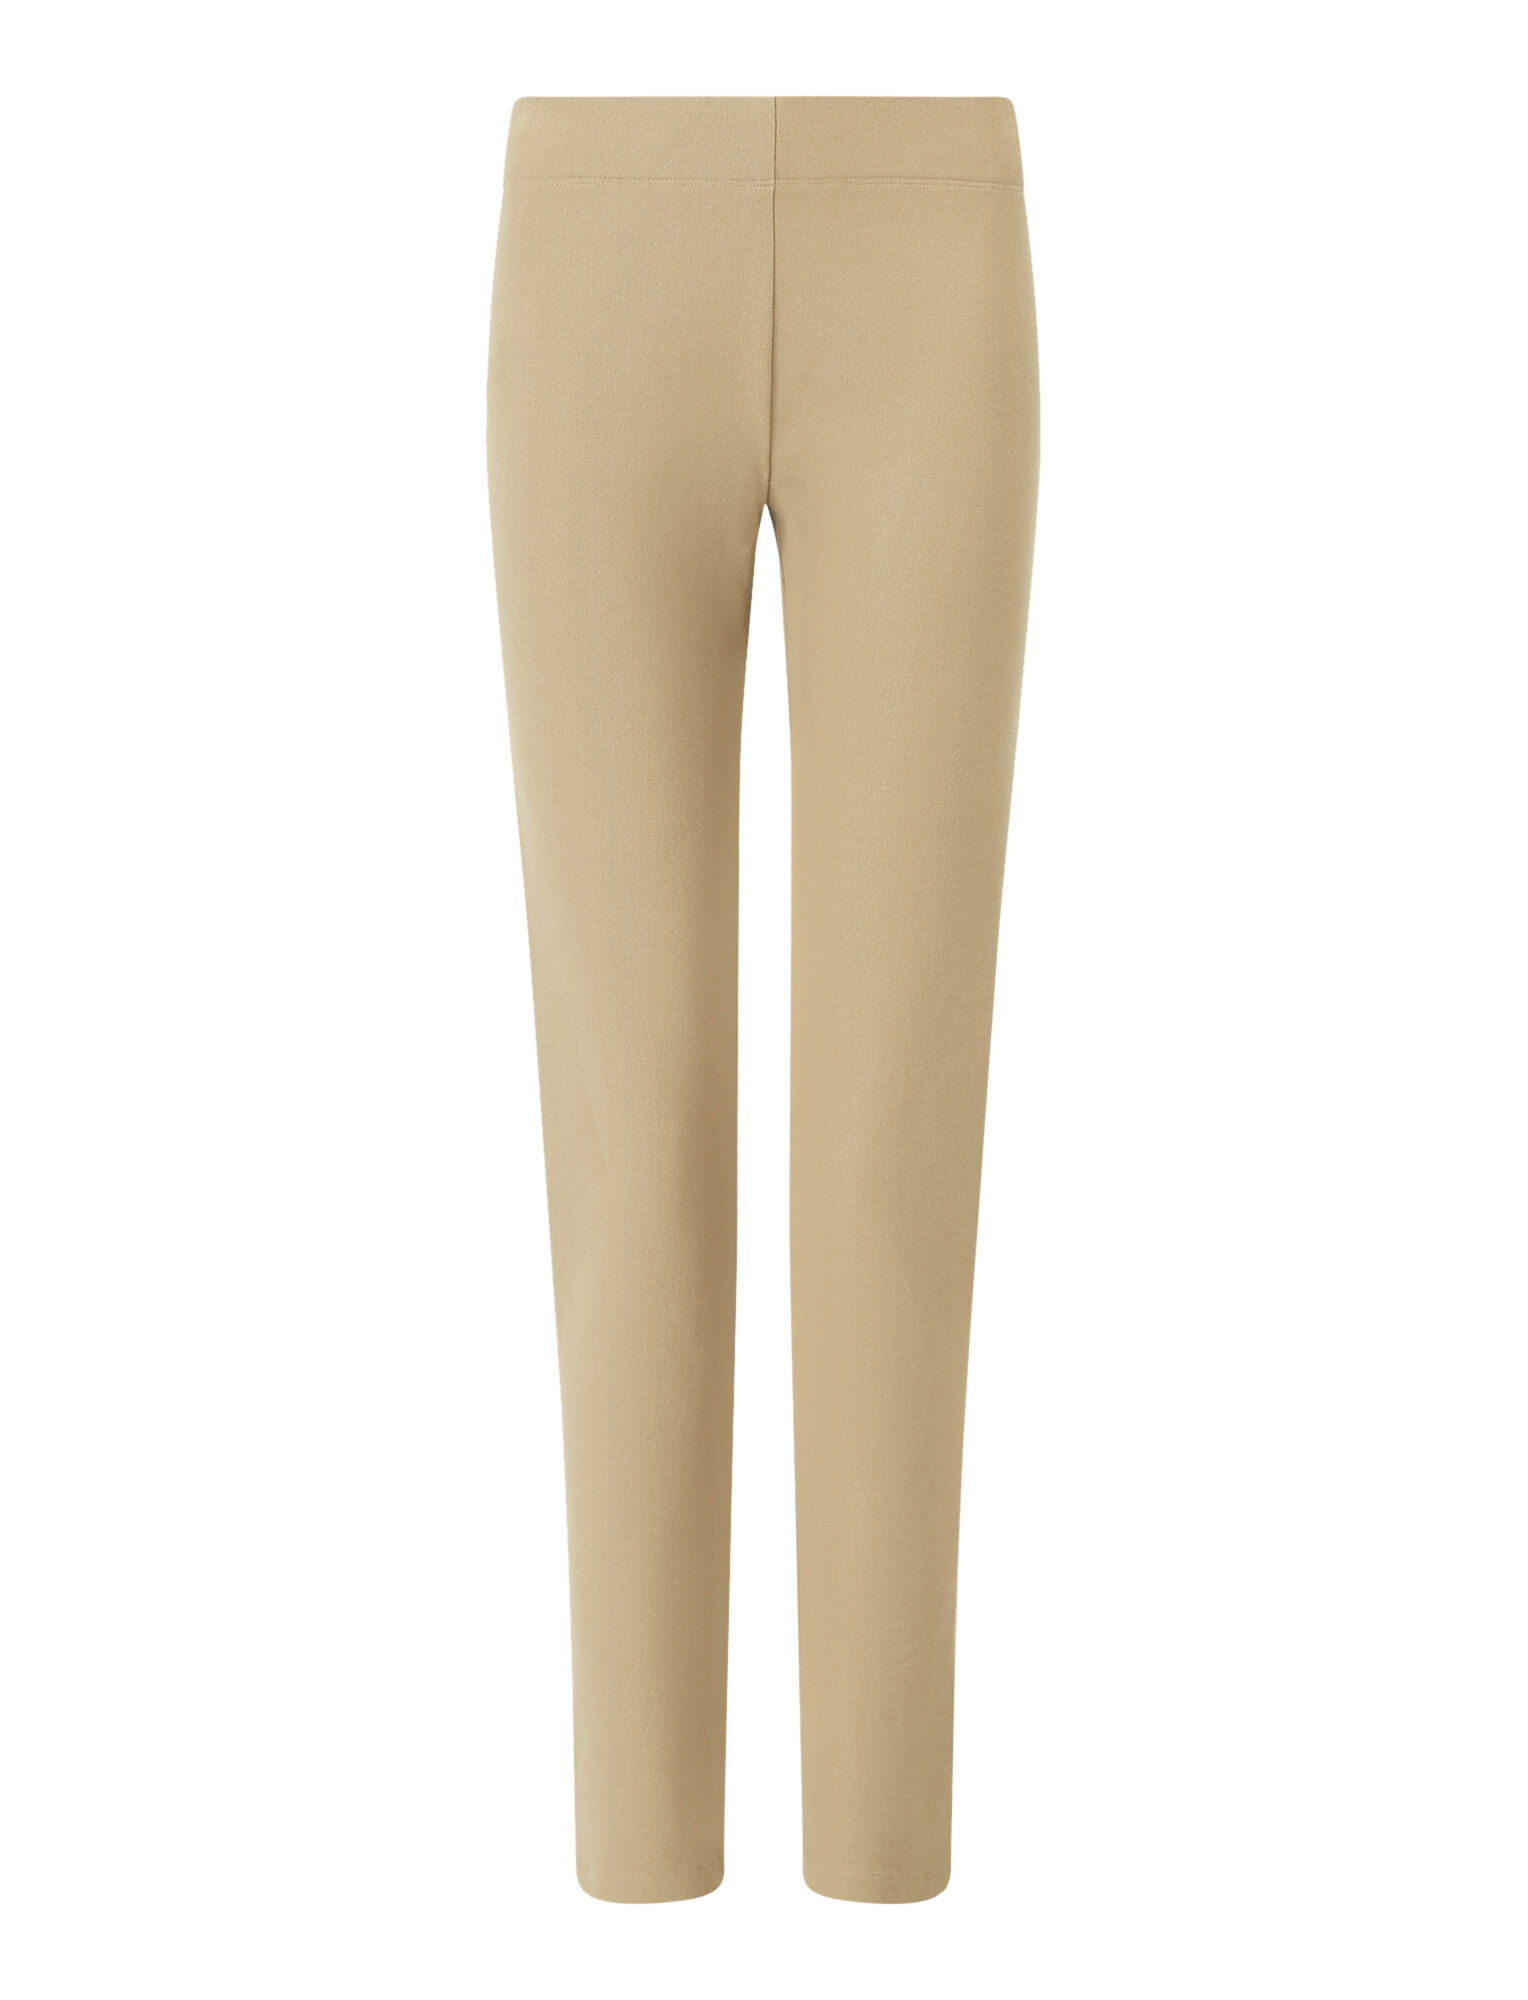 Joseph, Gabardine Stretch Leggings, in CAMEL